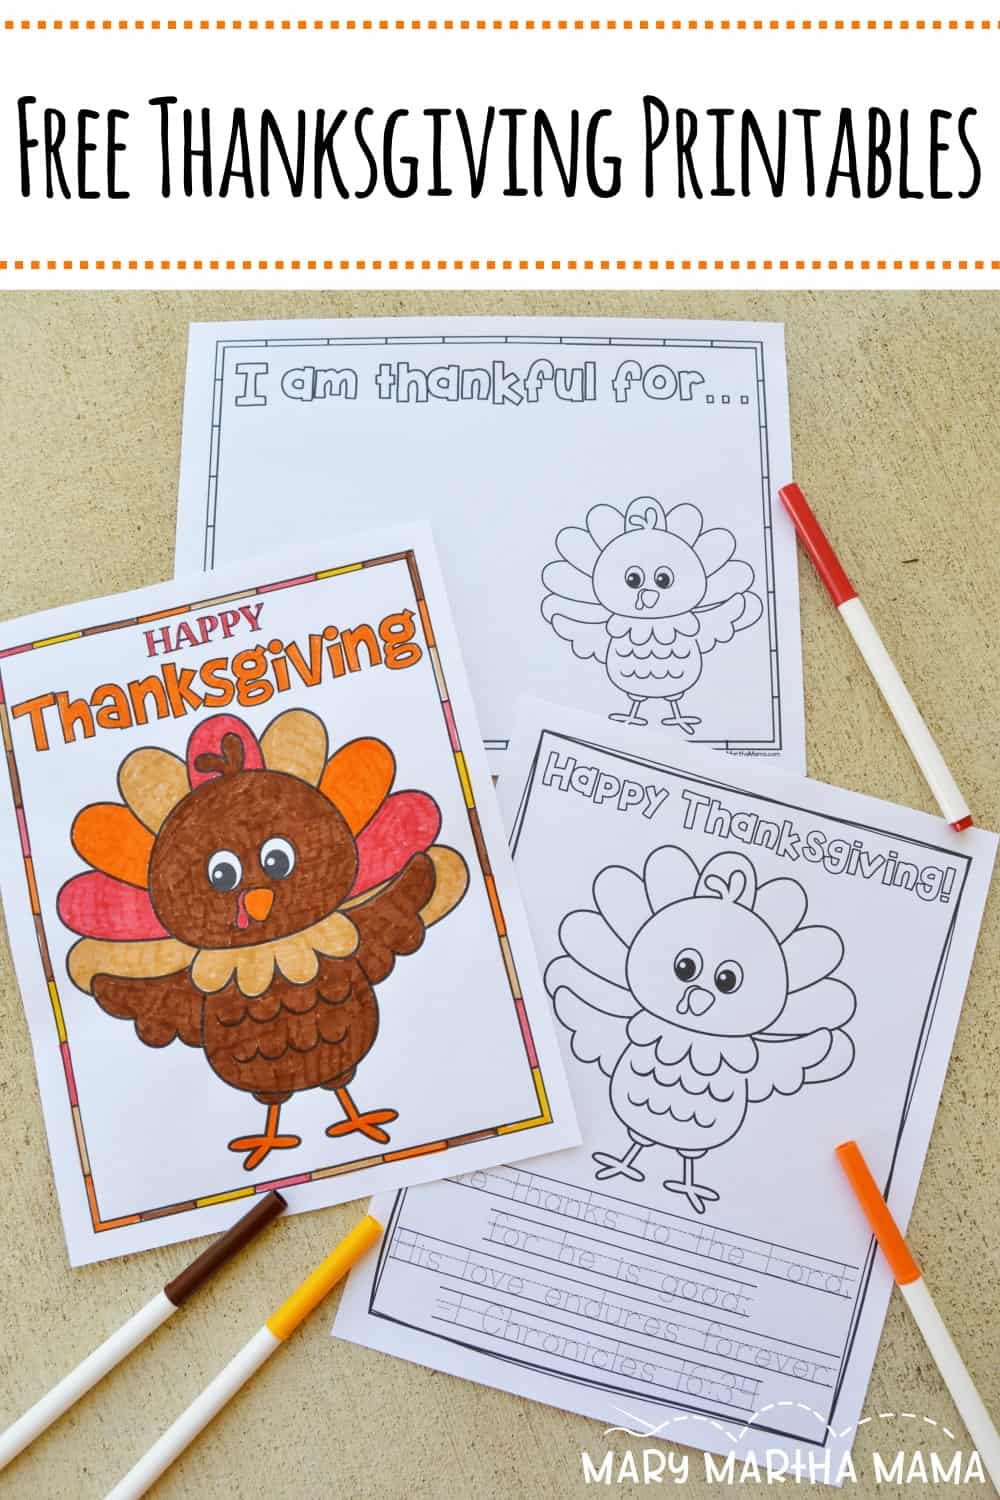 Looking for some fun? Check out these free Thanksgiving printables for kids.  There's coloring and sheets to list what we are thankful for.